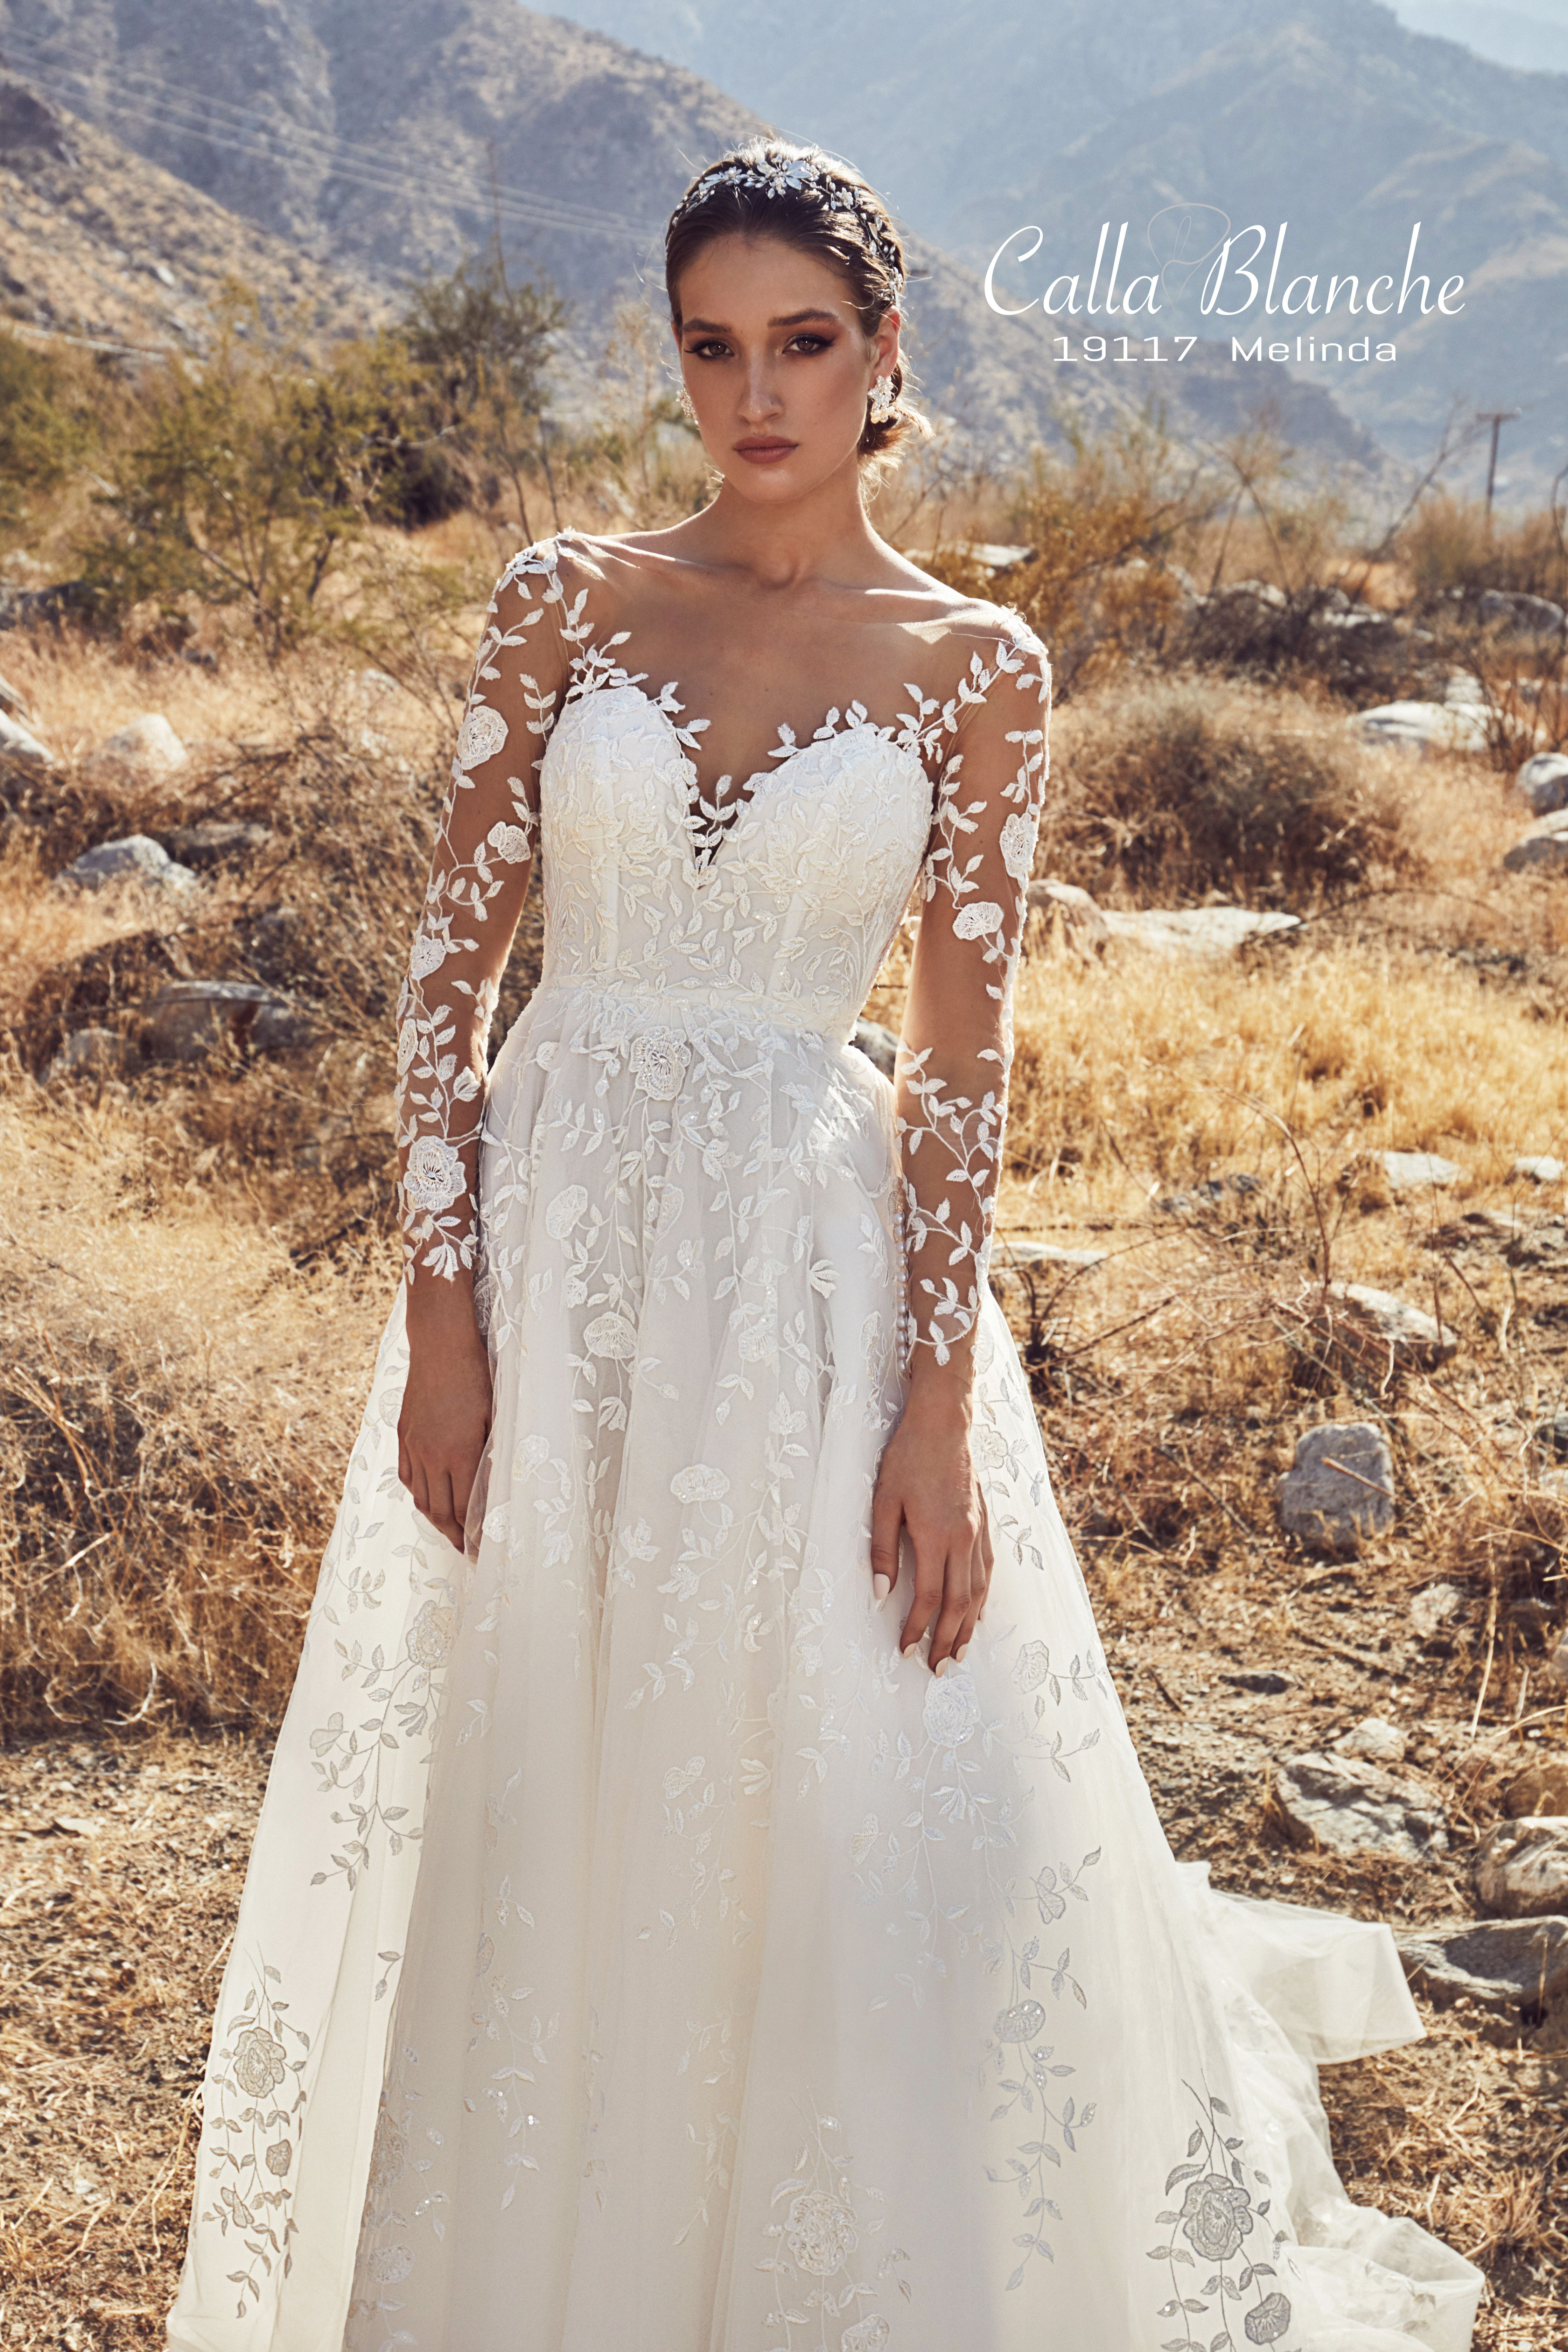 fa82fcde406 Calla Blanche Spring 2019 Collection Style  19117 Melinda Available Colors   Ivory Ivory with Skin Illusion